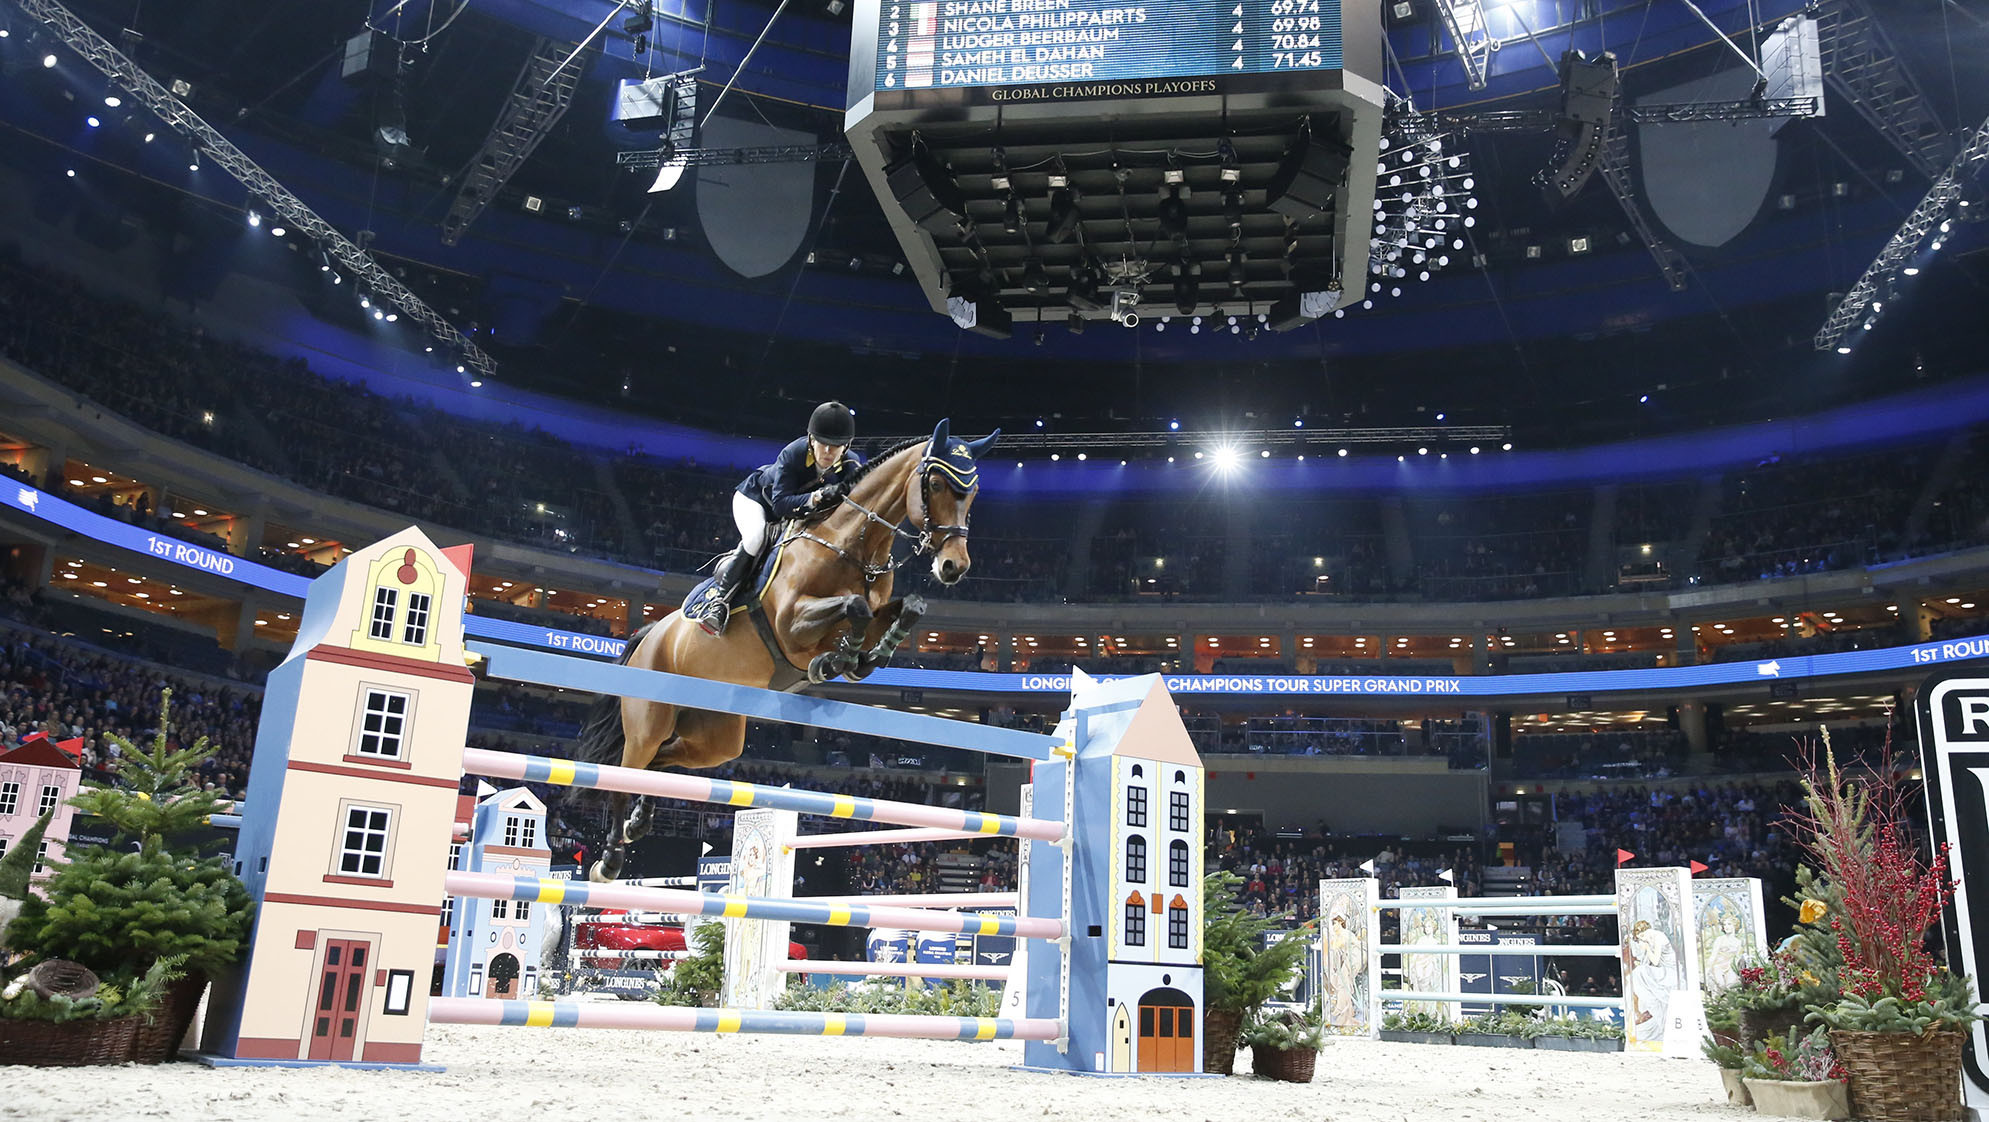 World's best showjumpers ready to compete at Global Champions Prague Playoffs